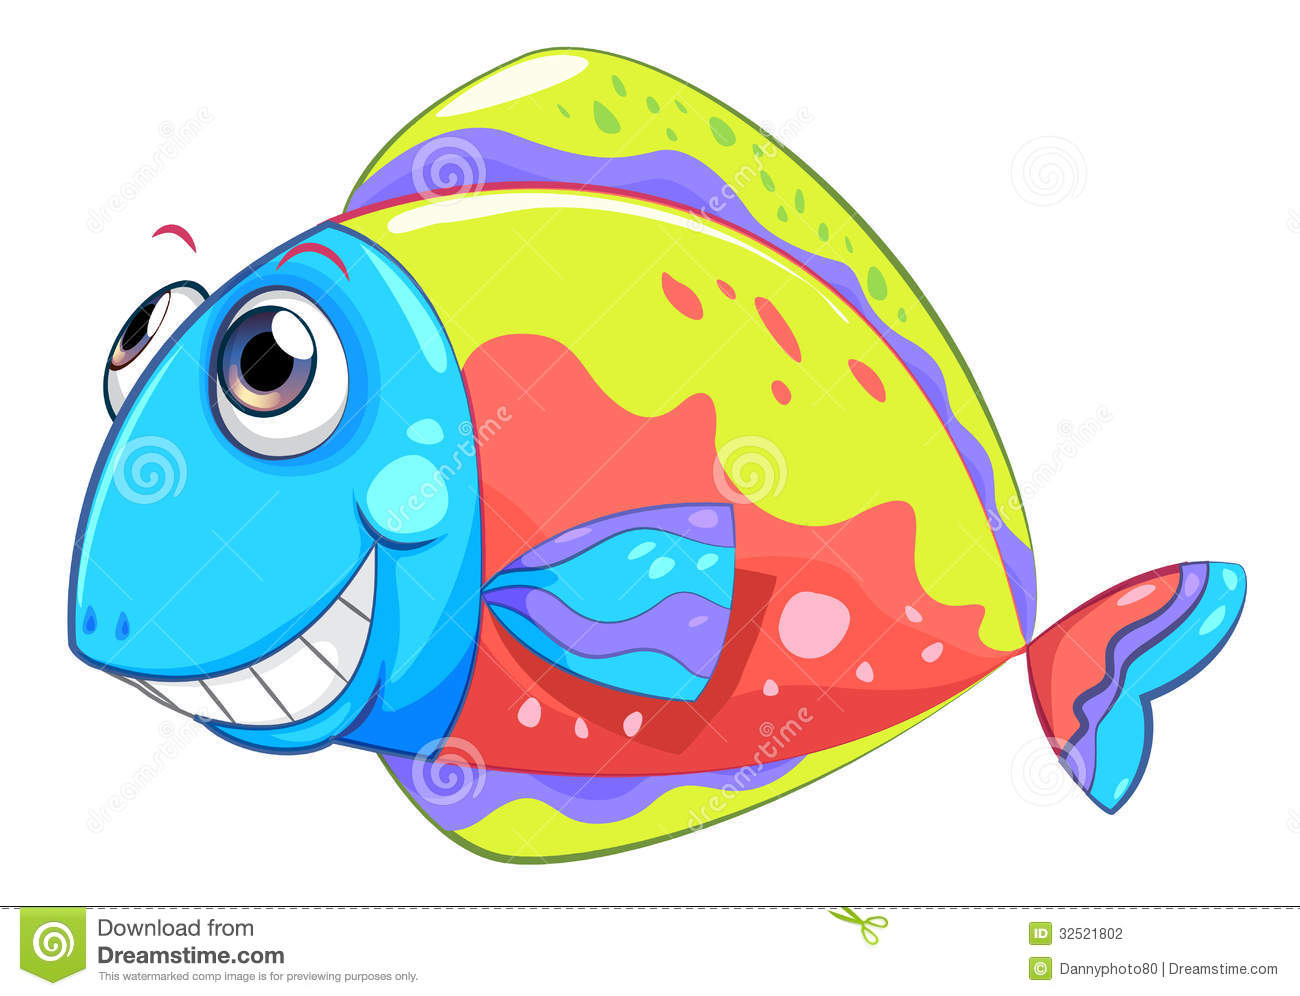 school of fish clipart at getdrawings com free for personal use rh getdrawings com images of a school of fish clipart school of fish clipart black and white